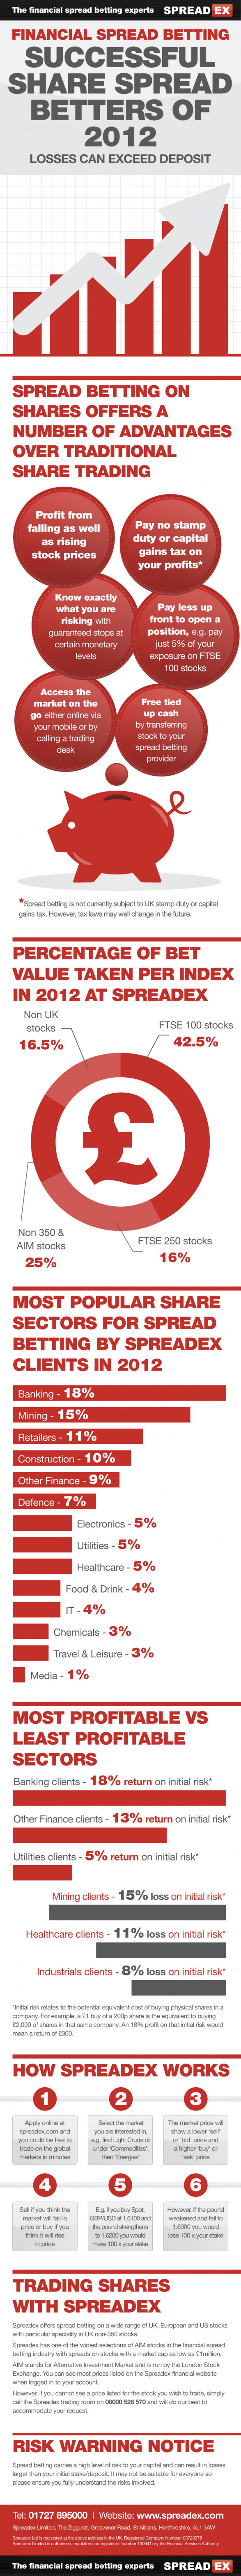 Financial Spread Trading � Successful Share Spread Betters of 2012